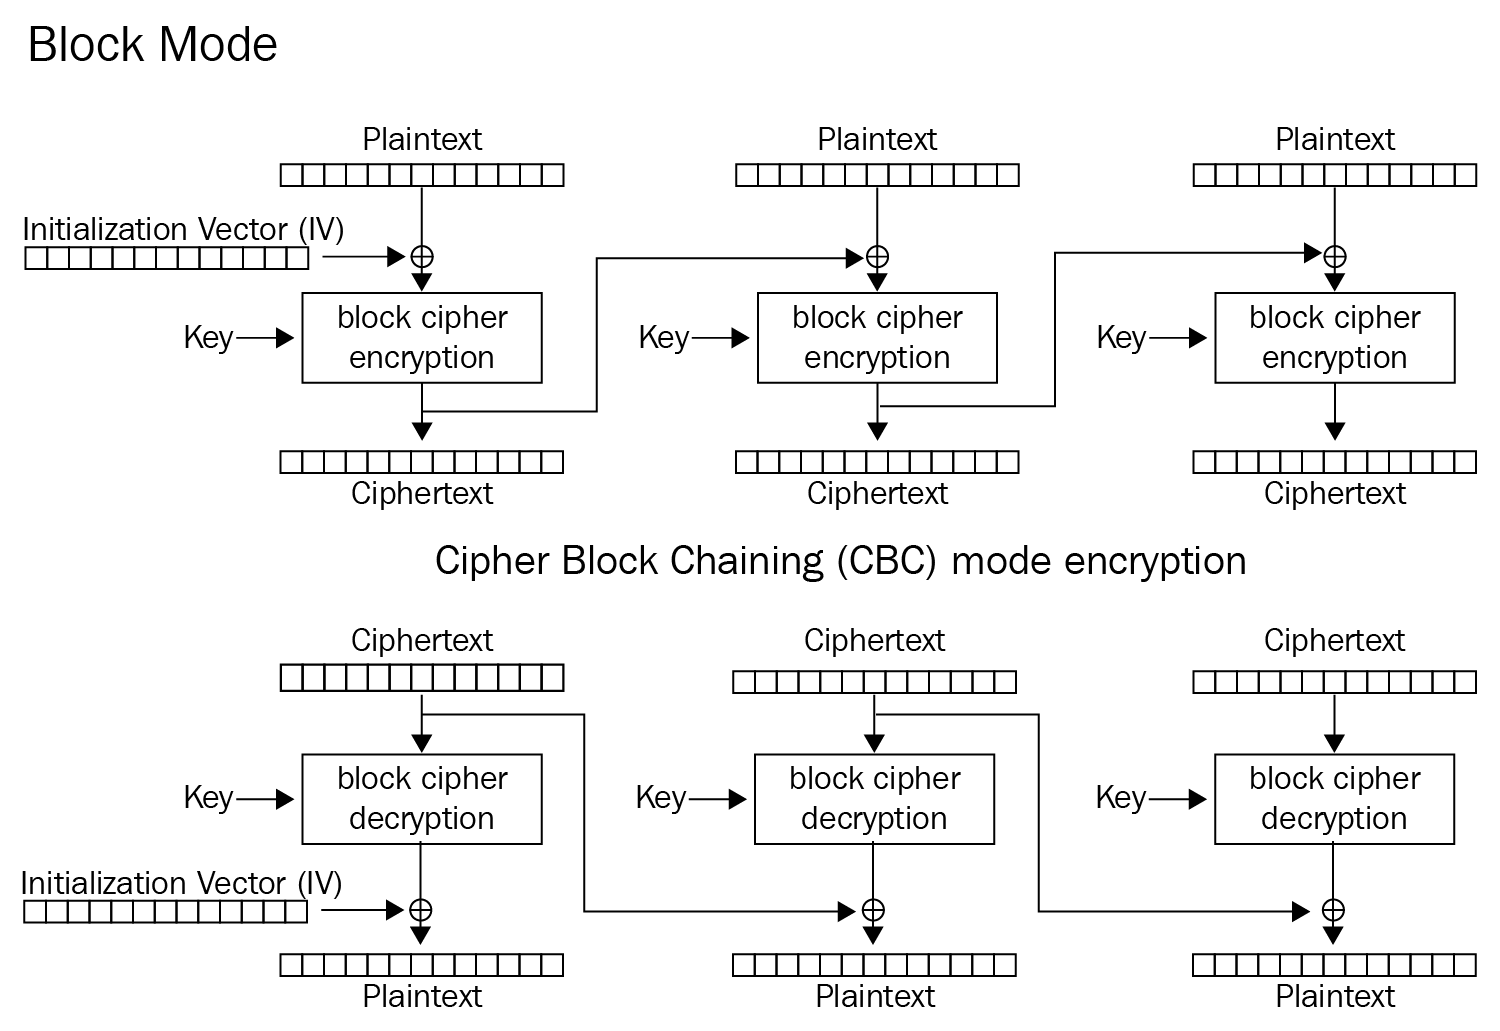 Protect your TCP tunnel by implementing AES encryption with